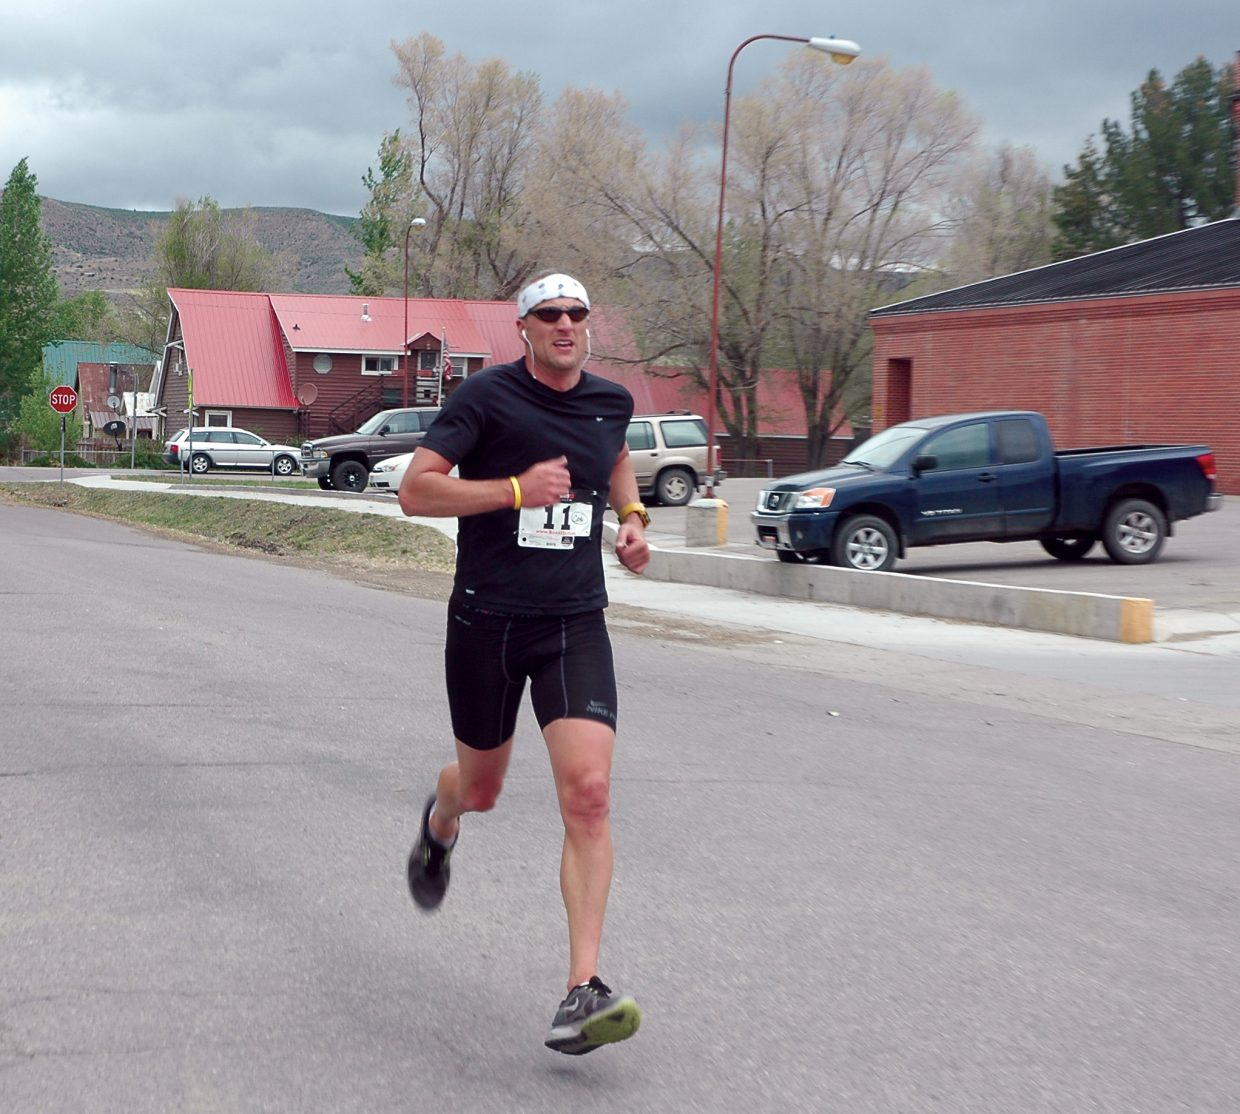 Rob Vermillion hits the home stretch during Saturday's Hayden Cog Run. Vermillion was the first finisher in the 8.4 mile run.